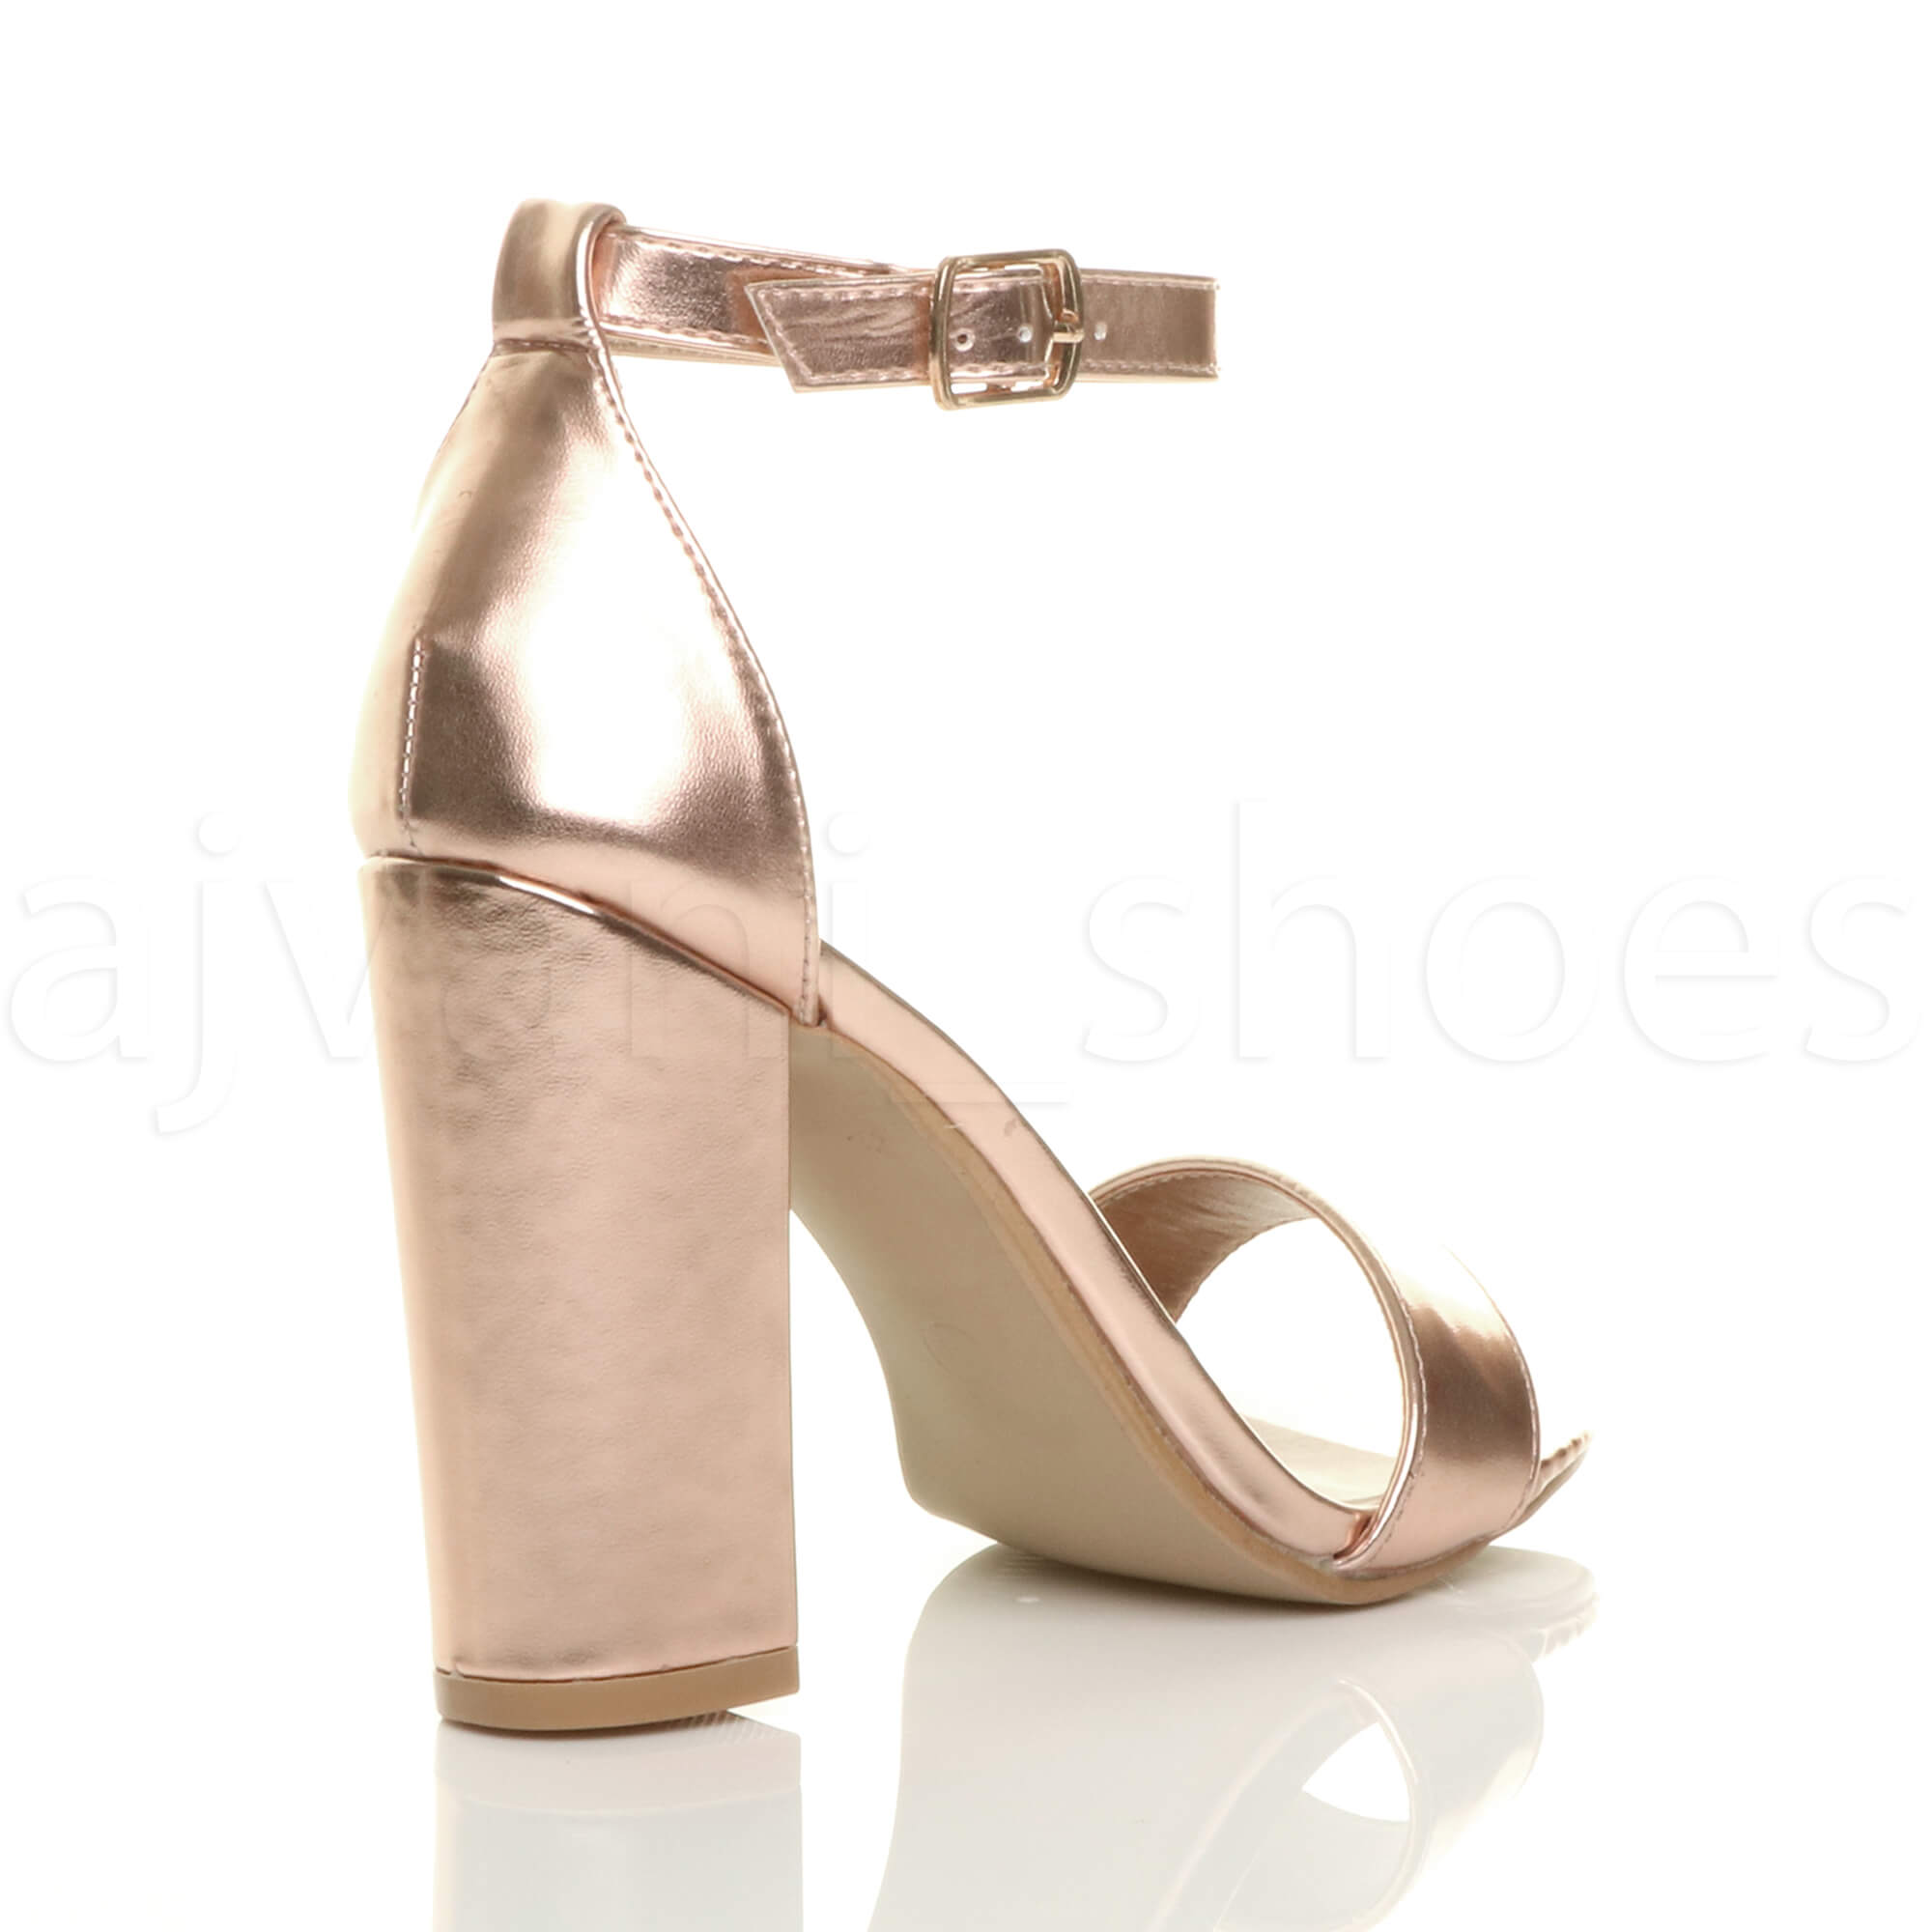 WOMENS-LADIES-BLOCK-HIGH-HEEL-ANKLE-STRAP-PEEP-TOE-STRAPPY-SANDALS-SHOES-SIZE thumbnail 134